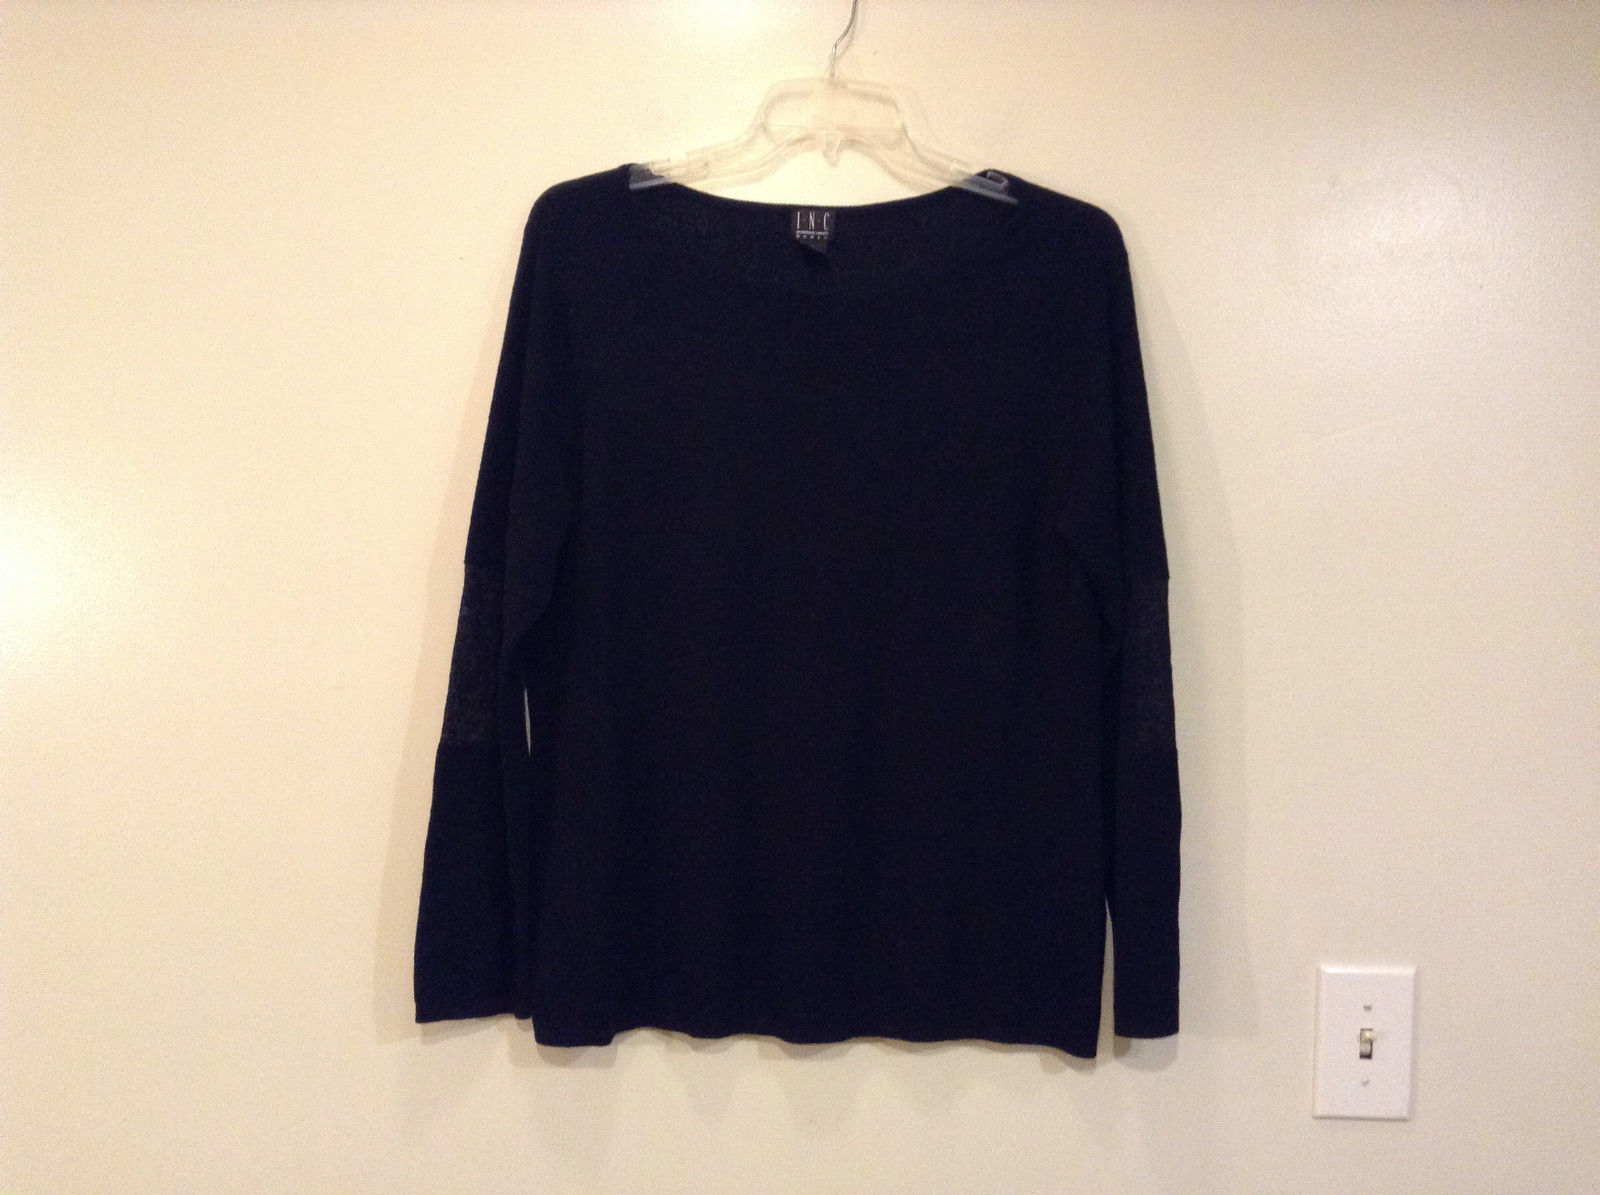 Primary image for Black Scoop Neck Long Sleeve Pullover Top INC International Concepts Size 1X